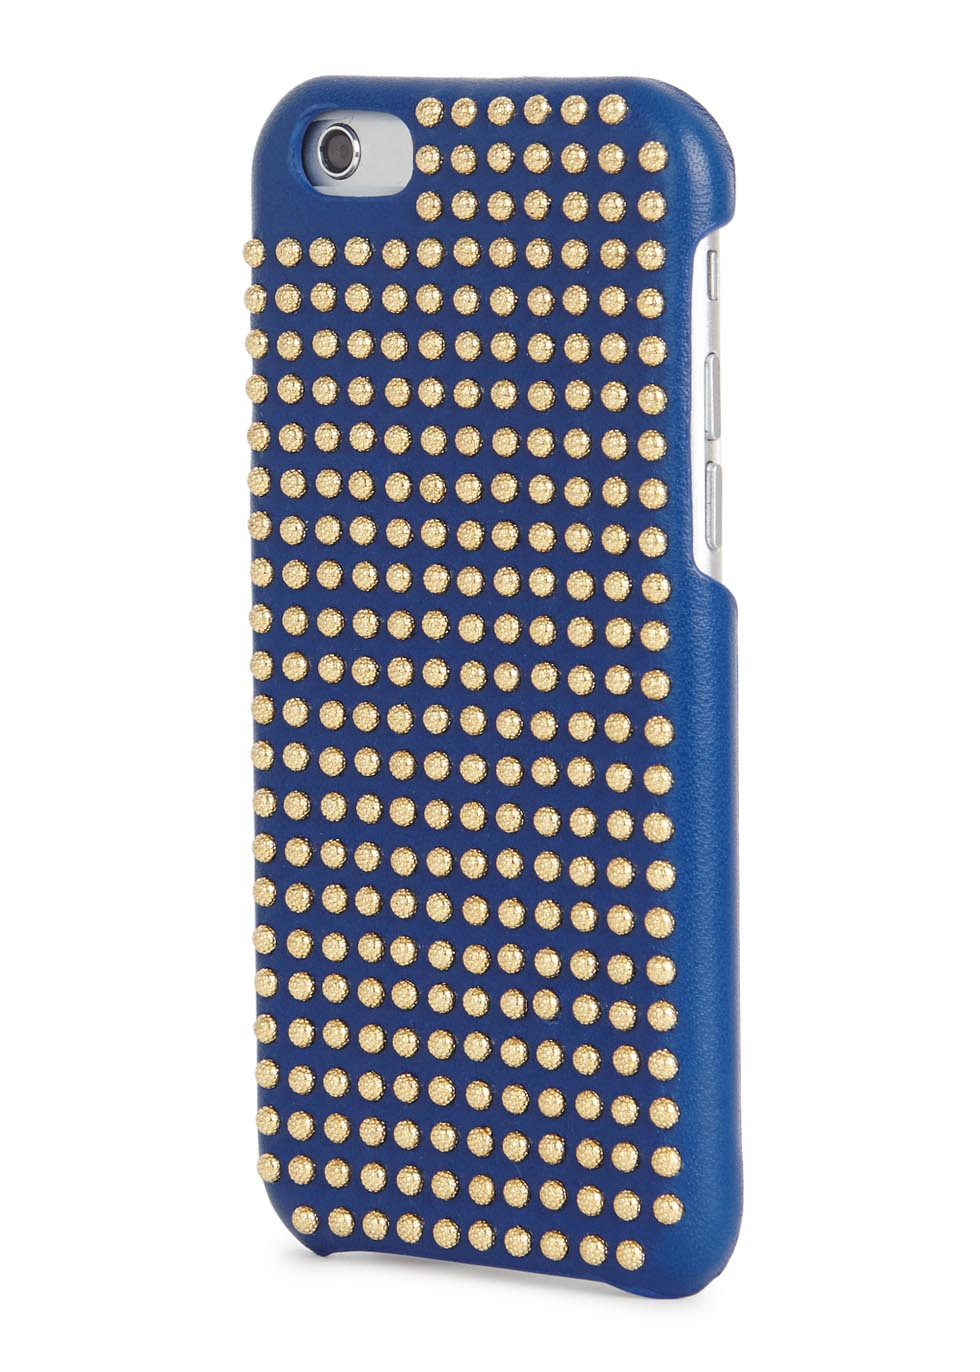 Blue studded leather iPhone 6/6S case - The Case Factory